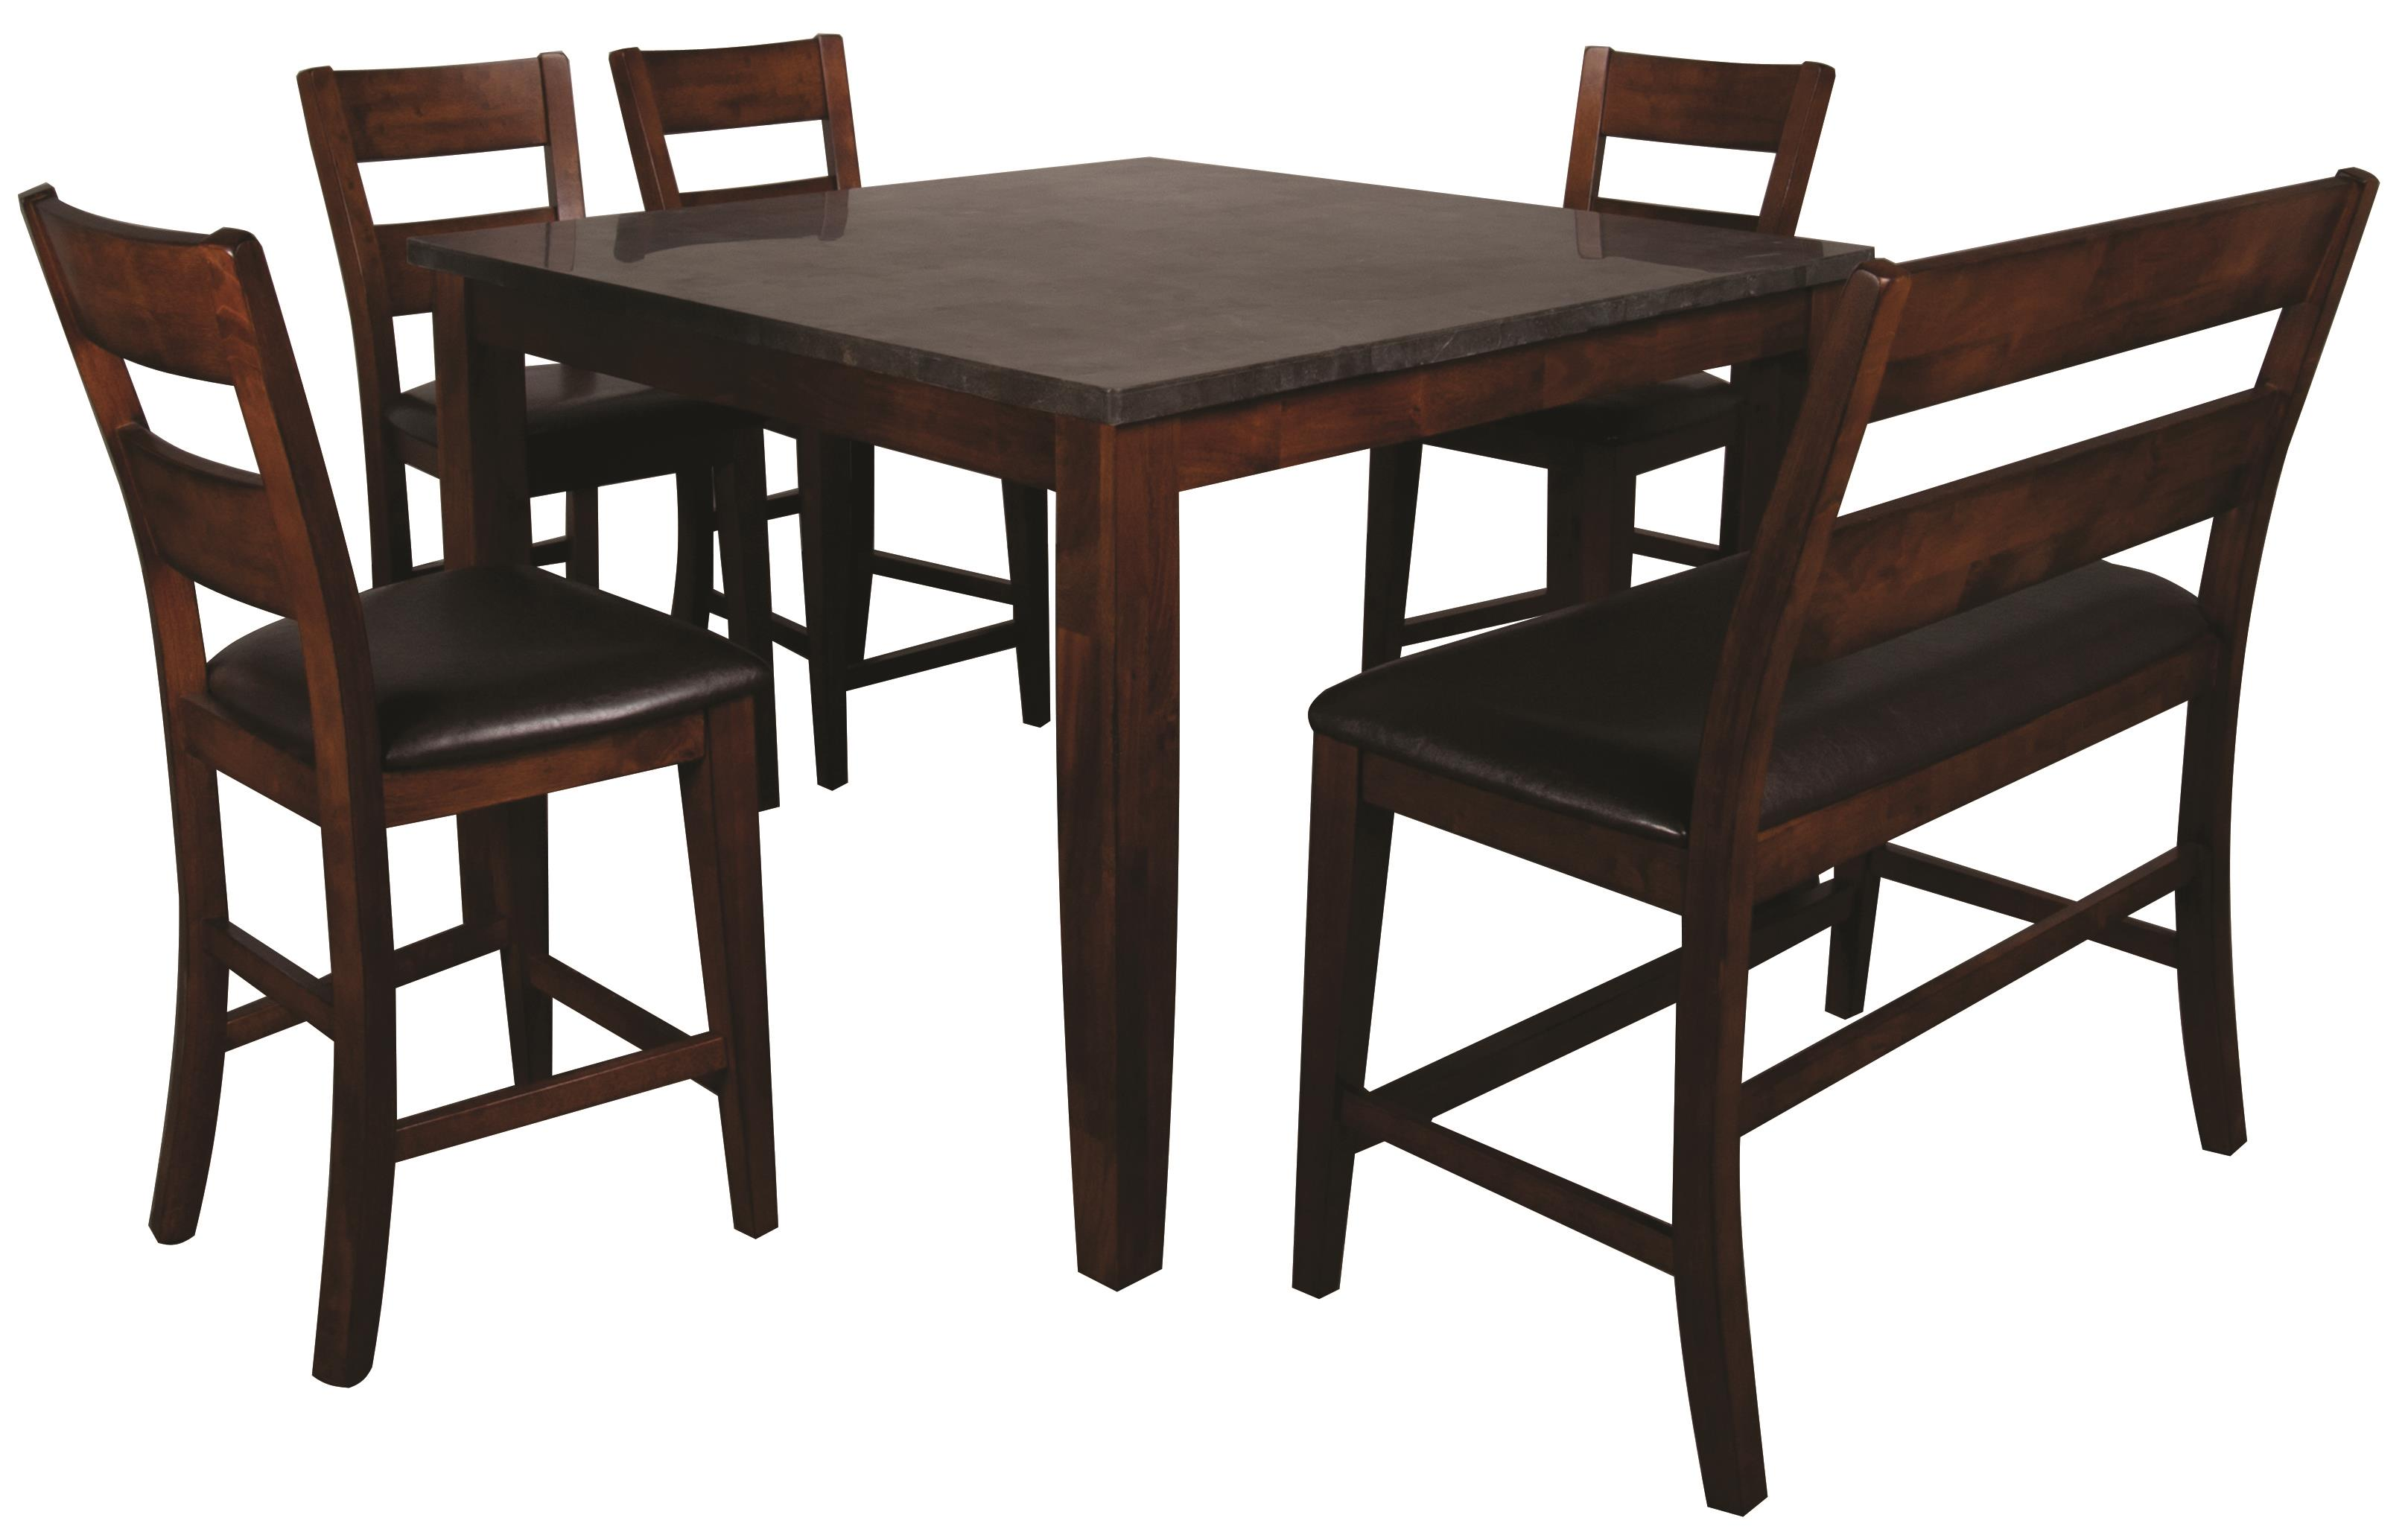 Kitchen Tables And Chairs Melbourne Melbourne 6 piece pub set with blue stone top morris home pub morris home furnishings melbourne melbourne 6 piece pub set item number 388129249 workwithnaturefo